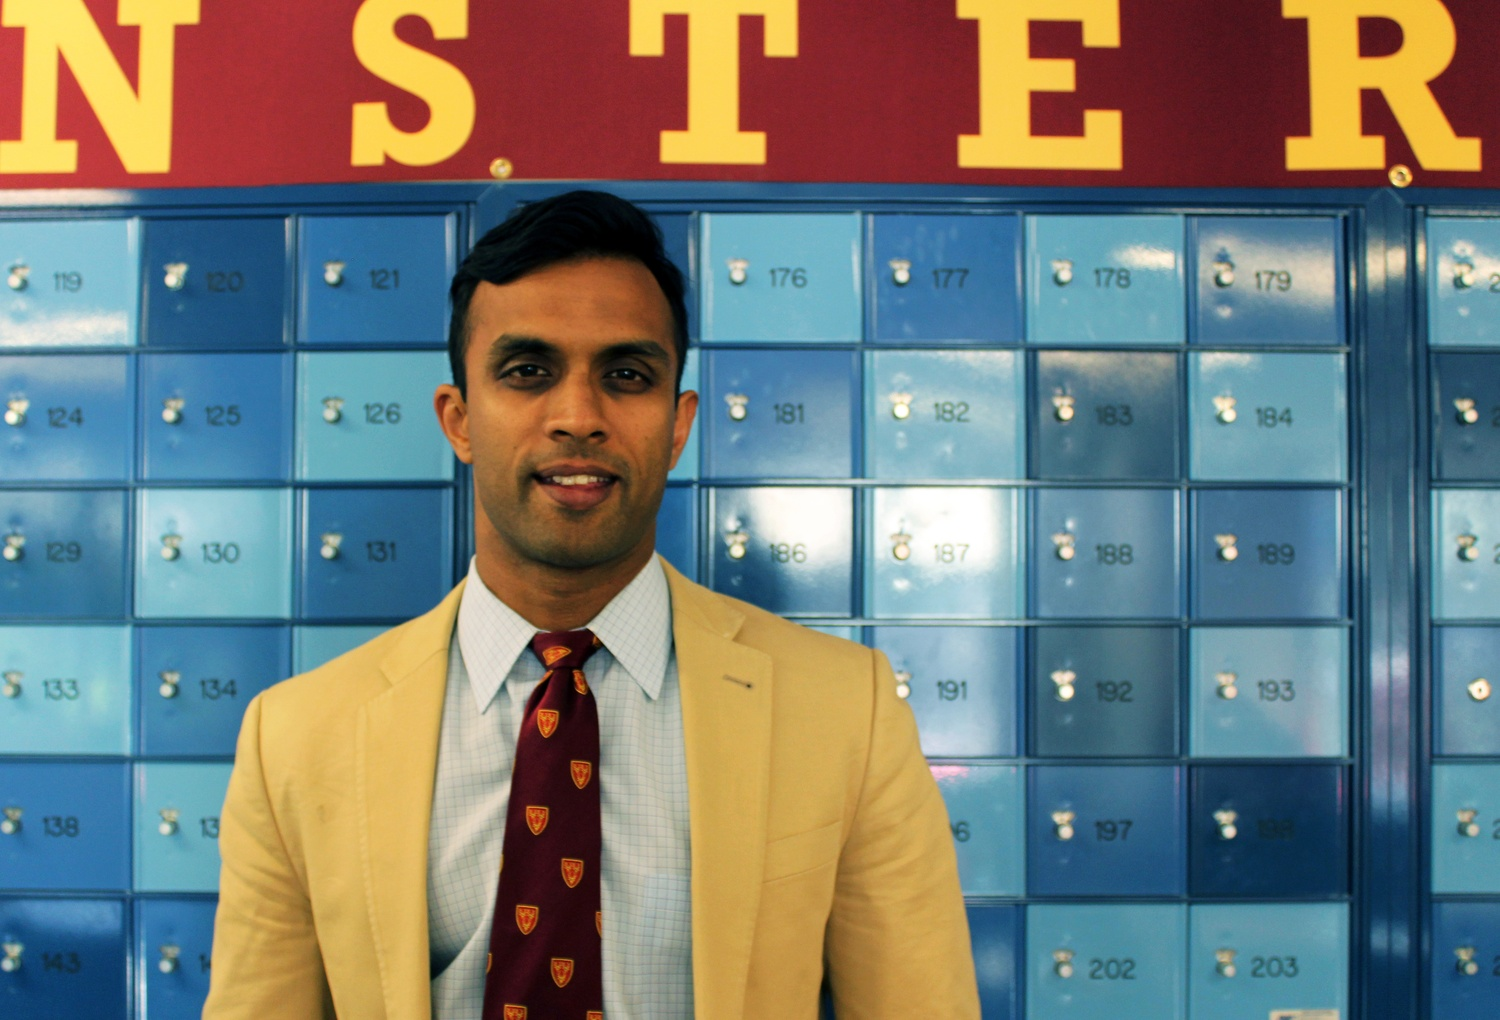 Avik Chatterjee '02, a former Dunster resident tutor who was widely regarded as an ally to BGLTQ students in the House but was not asked back to the position last spring.